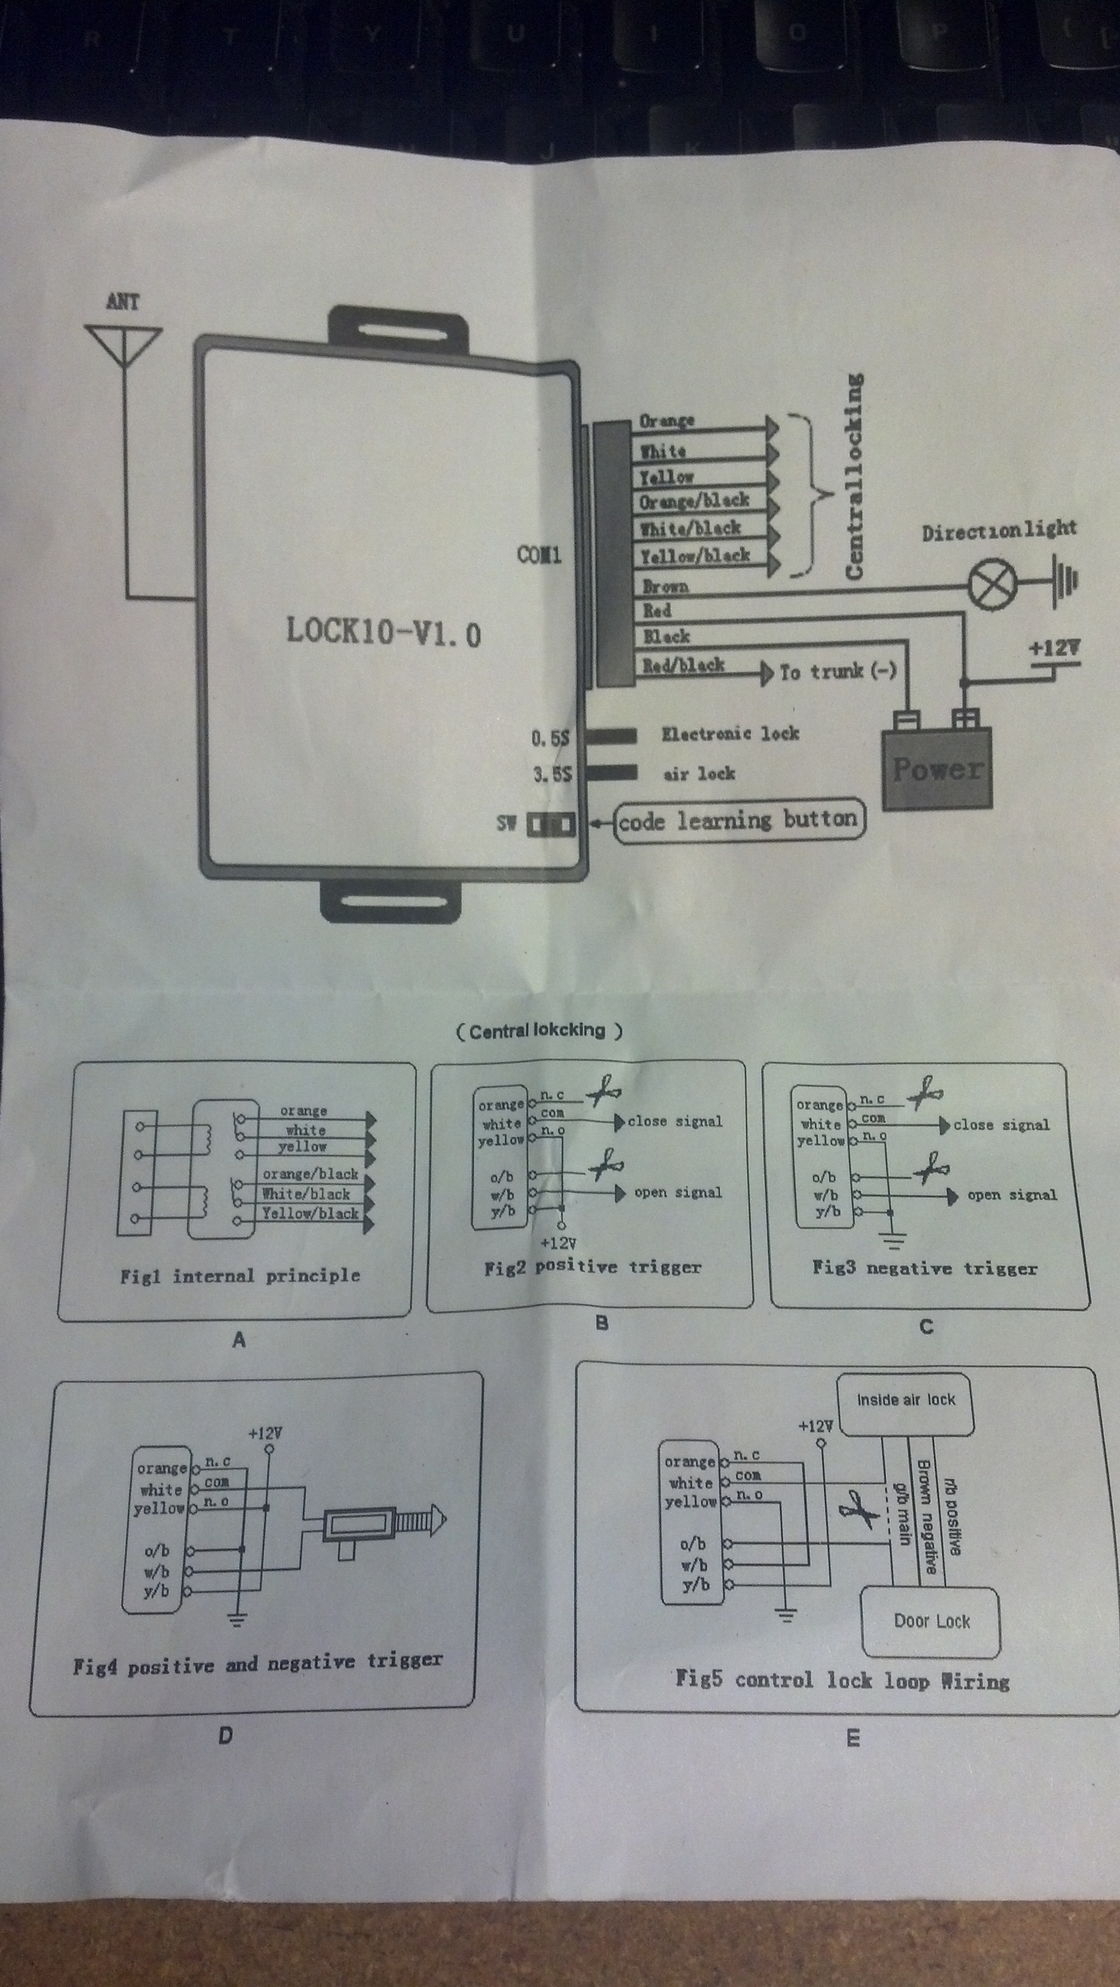 the12volt com subwoofer wiring the12volt com image the12volt com wiring diagram wiring diagram and hernes on the12volt com subwoofer wiring